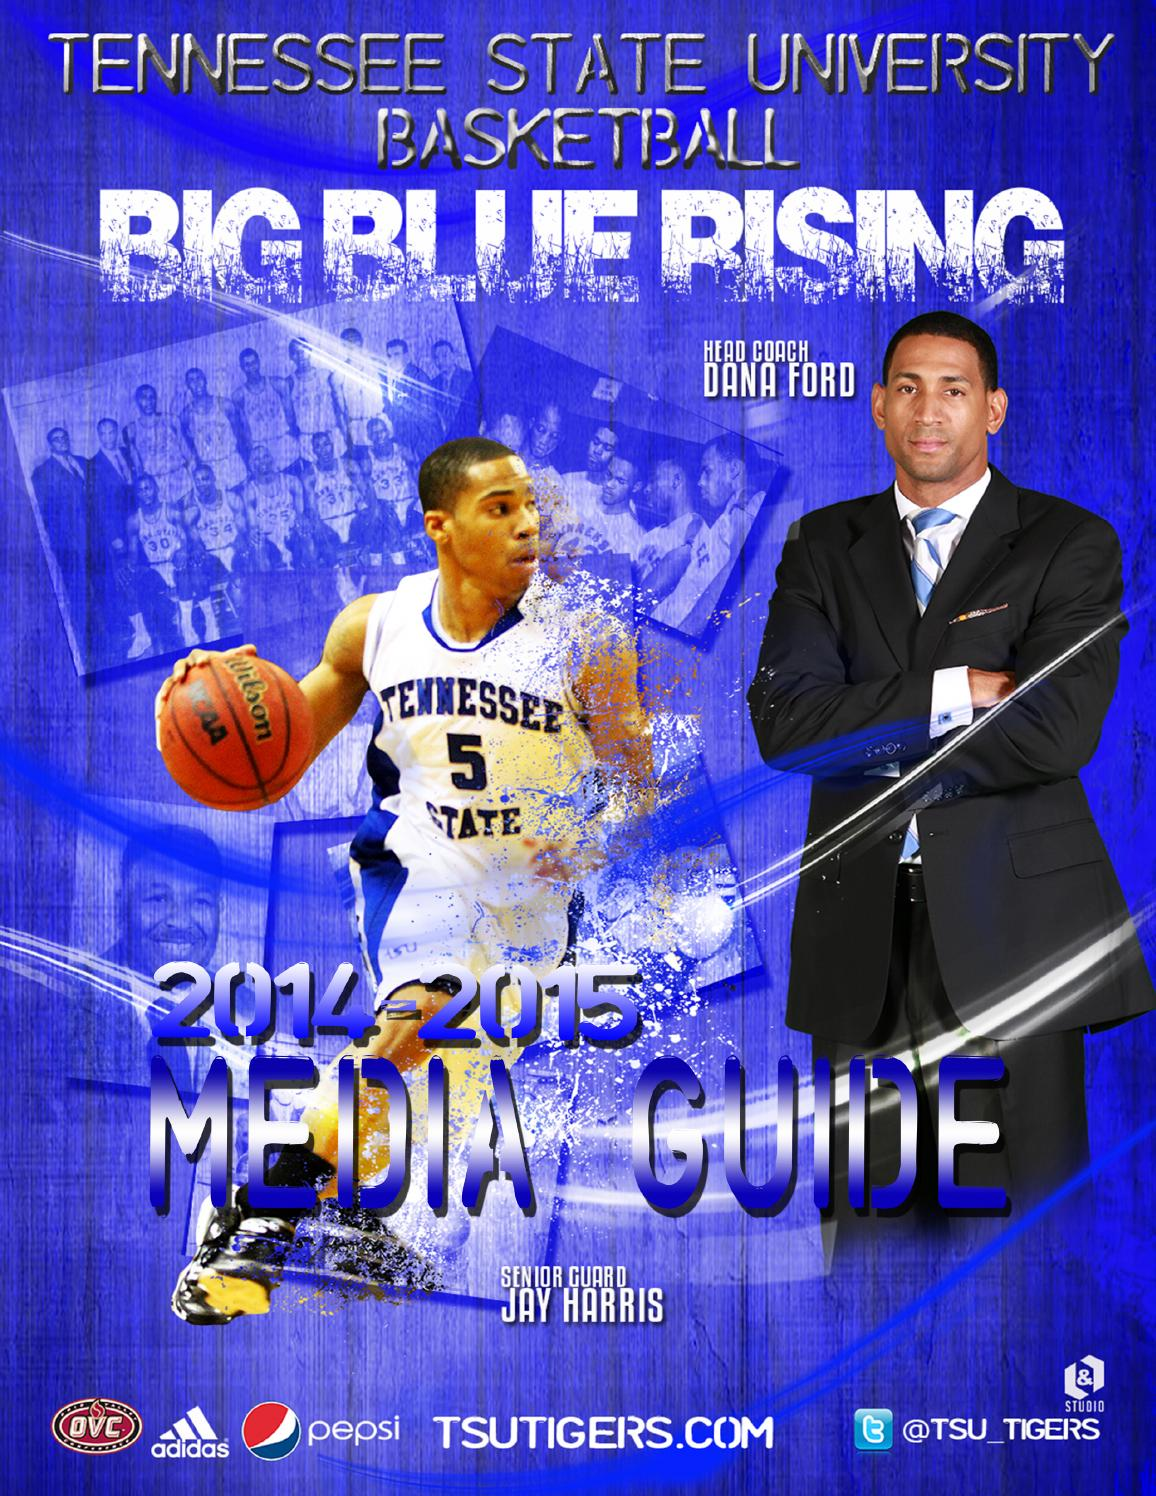 2014-15 TSU Men's Basketball Media Guide by TSUTIGERS - Issuu